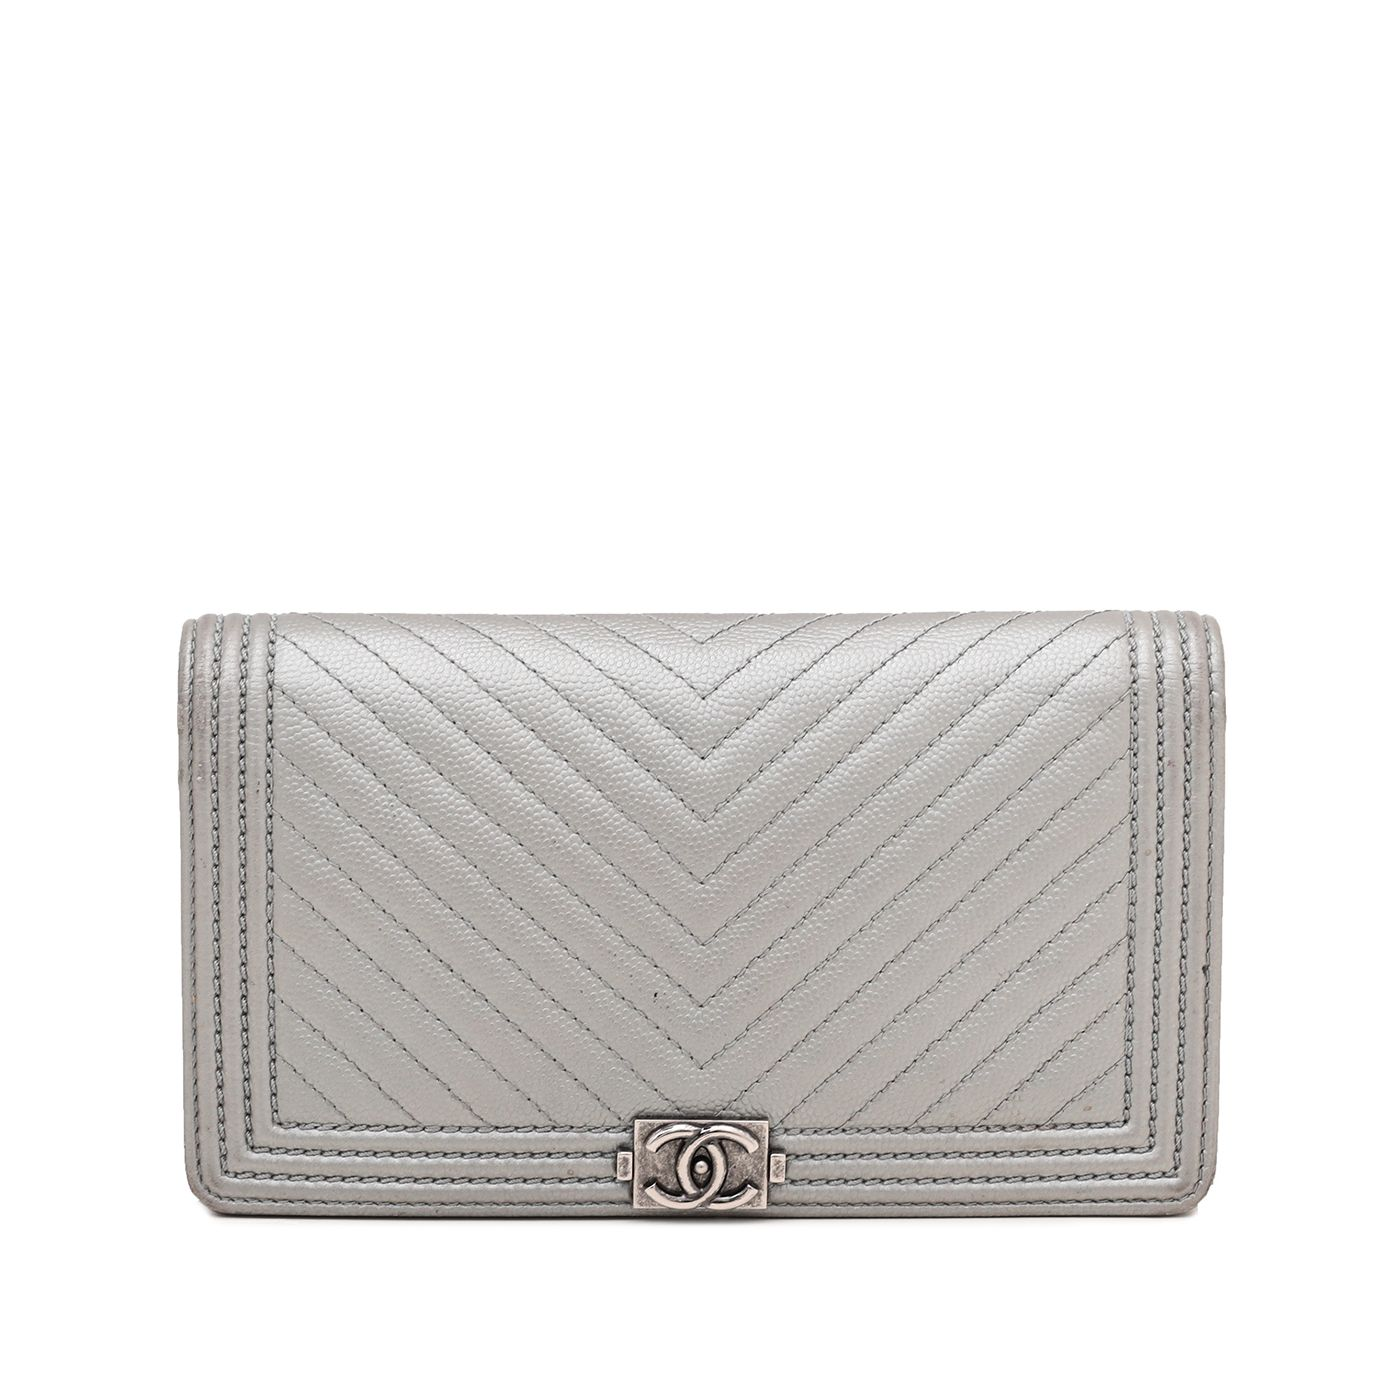 Chanel Grey Silver Le Boy Chevron Yen Wallet